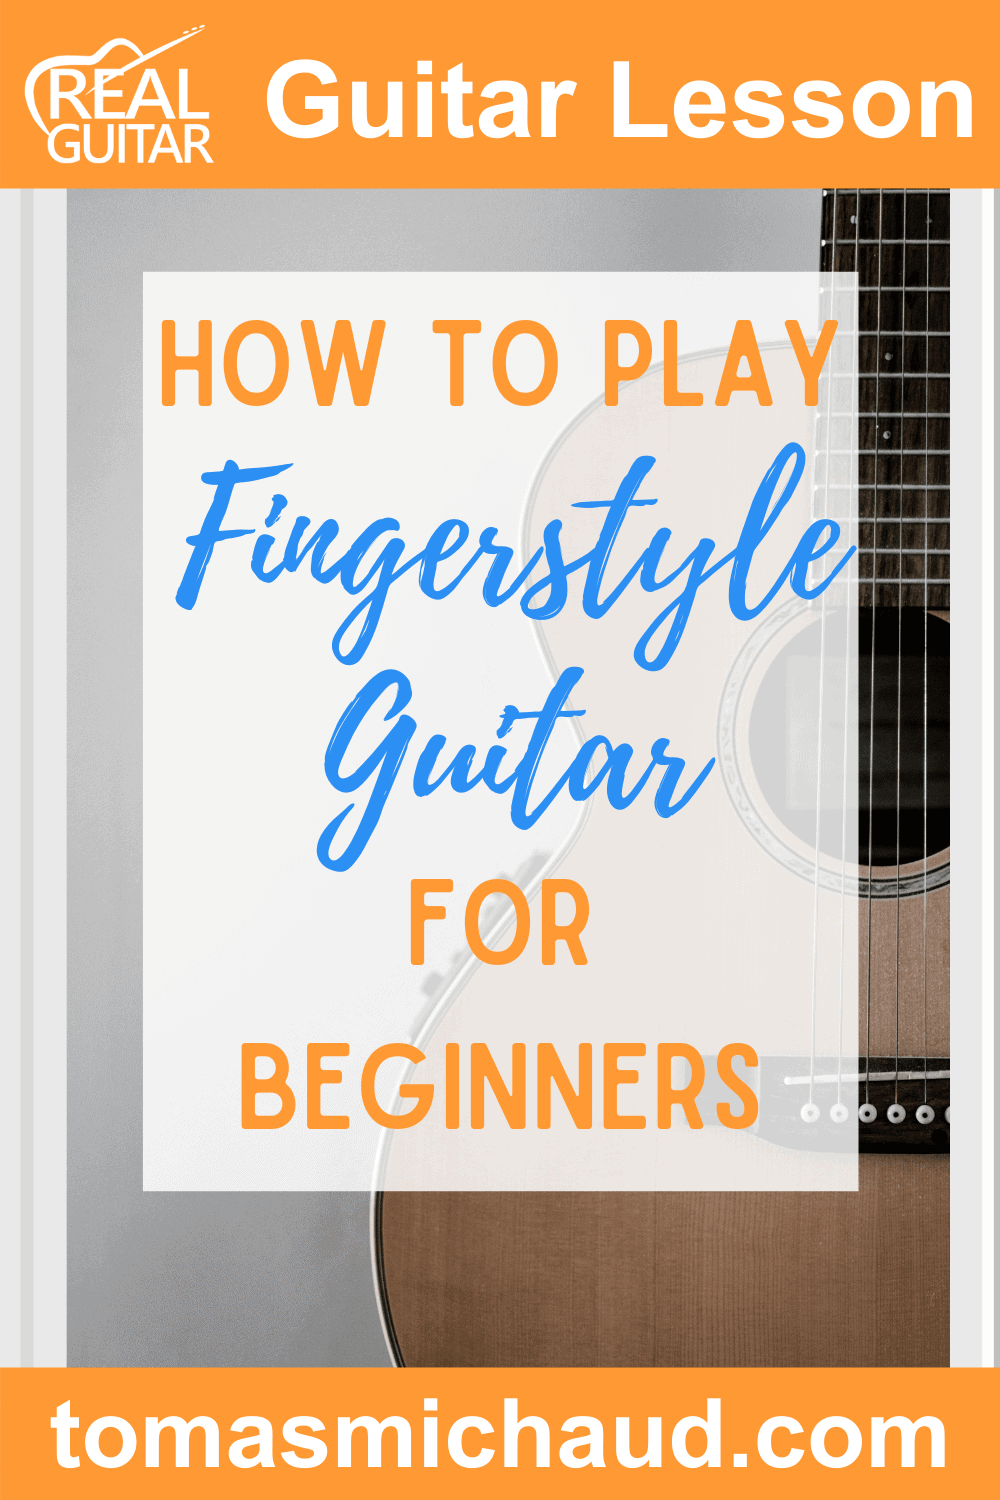 How to Play Fingerstyle Guitar for Beginners